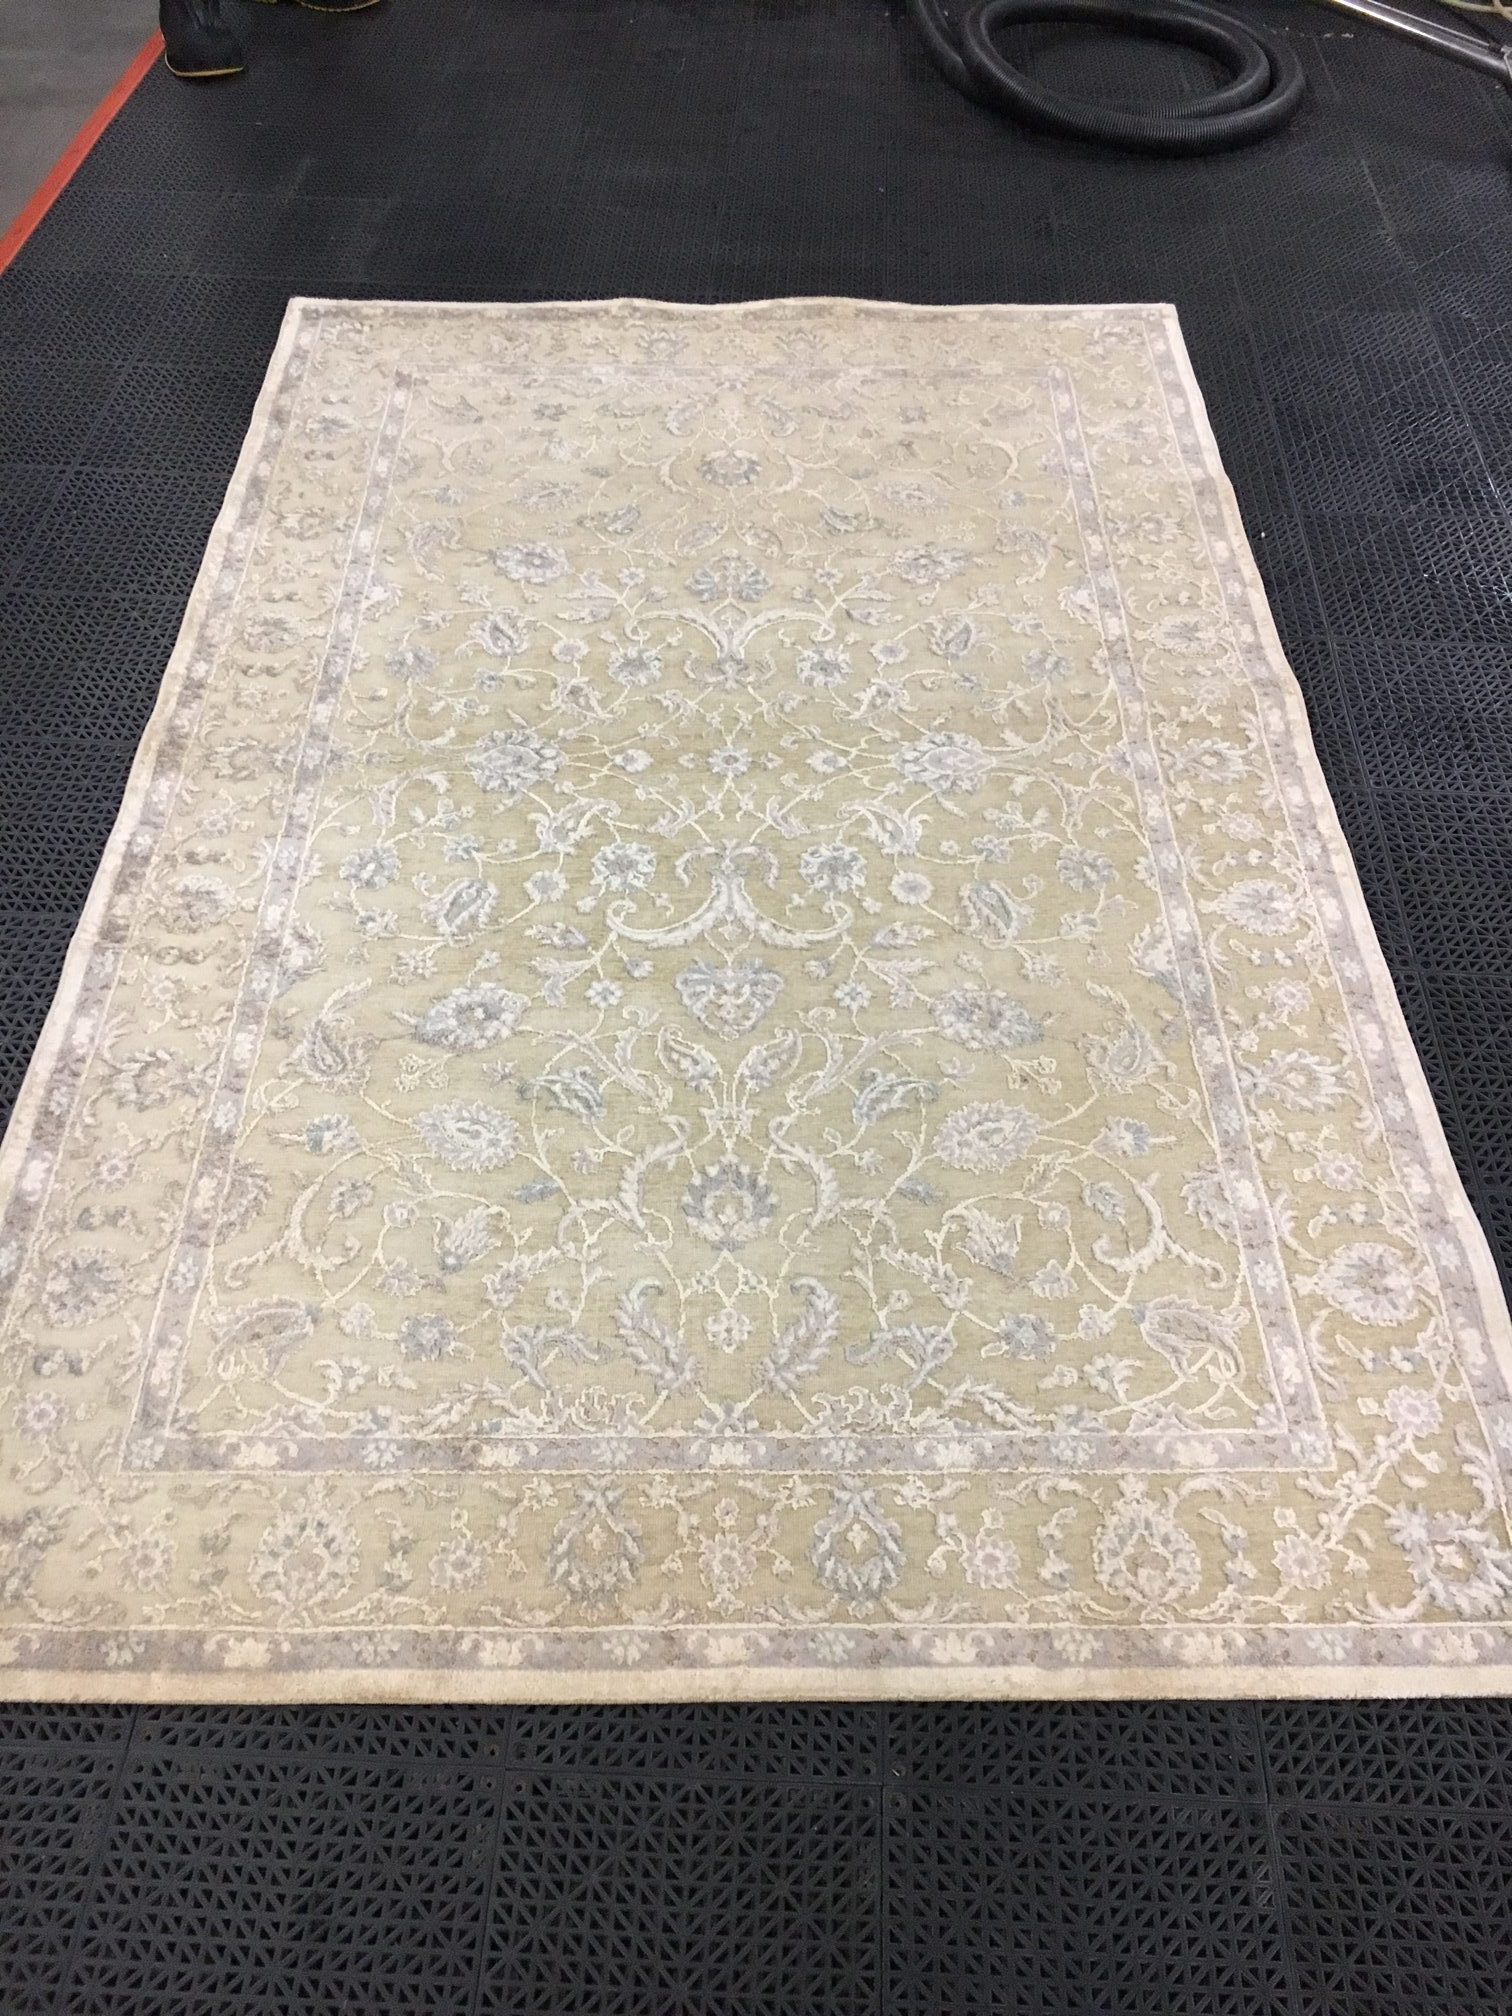 After Before Cleaning In Progress Rug